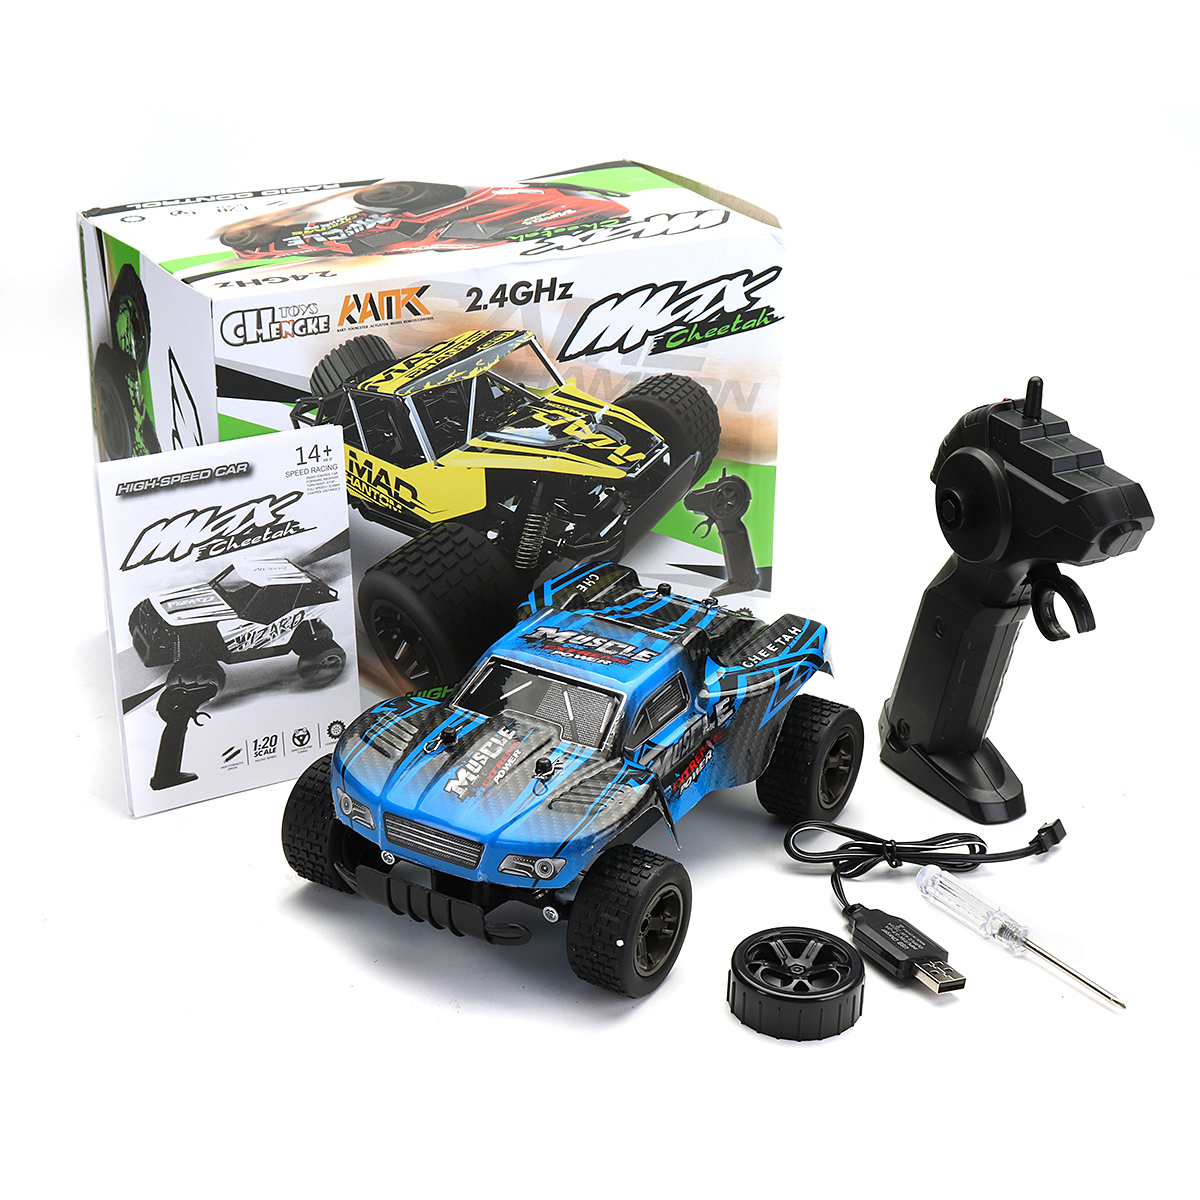 1:20 2.4GHz 4WD High Speed Radio Fast Remote Control RC Car Off-Road Monster Truck RTR Toy For Children Gift